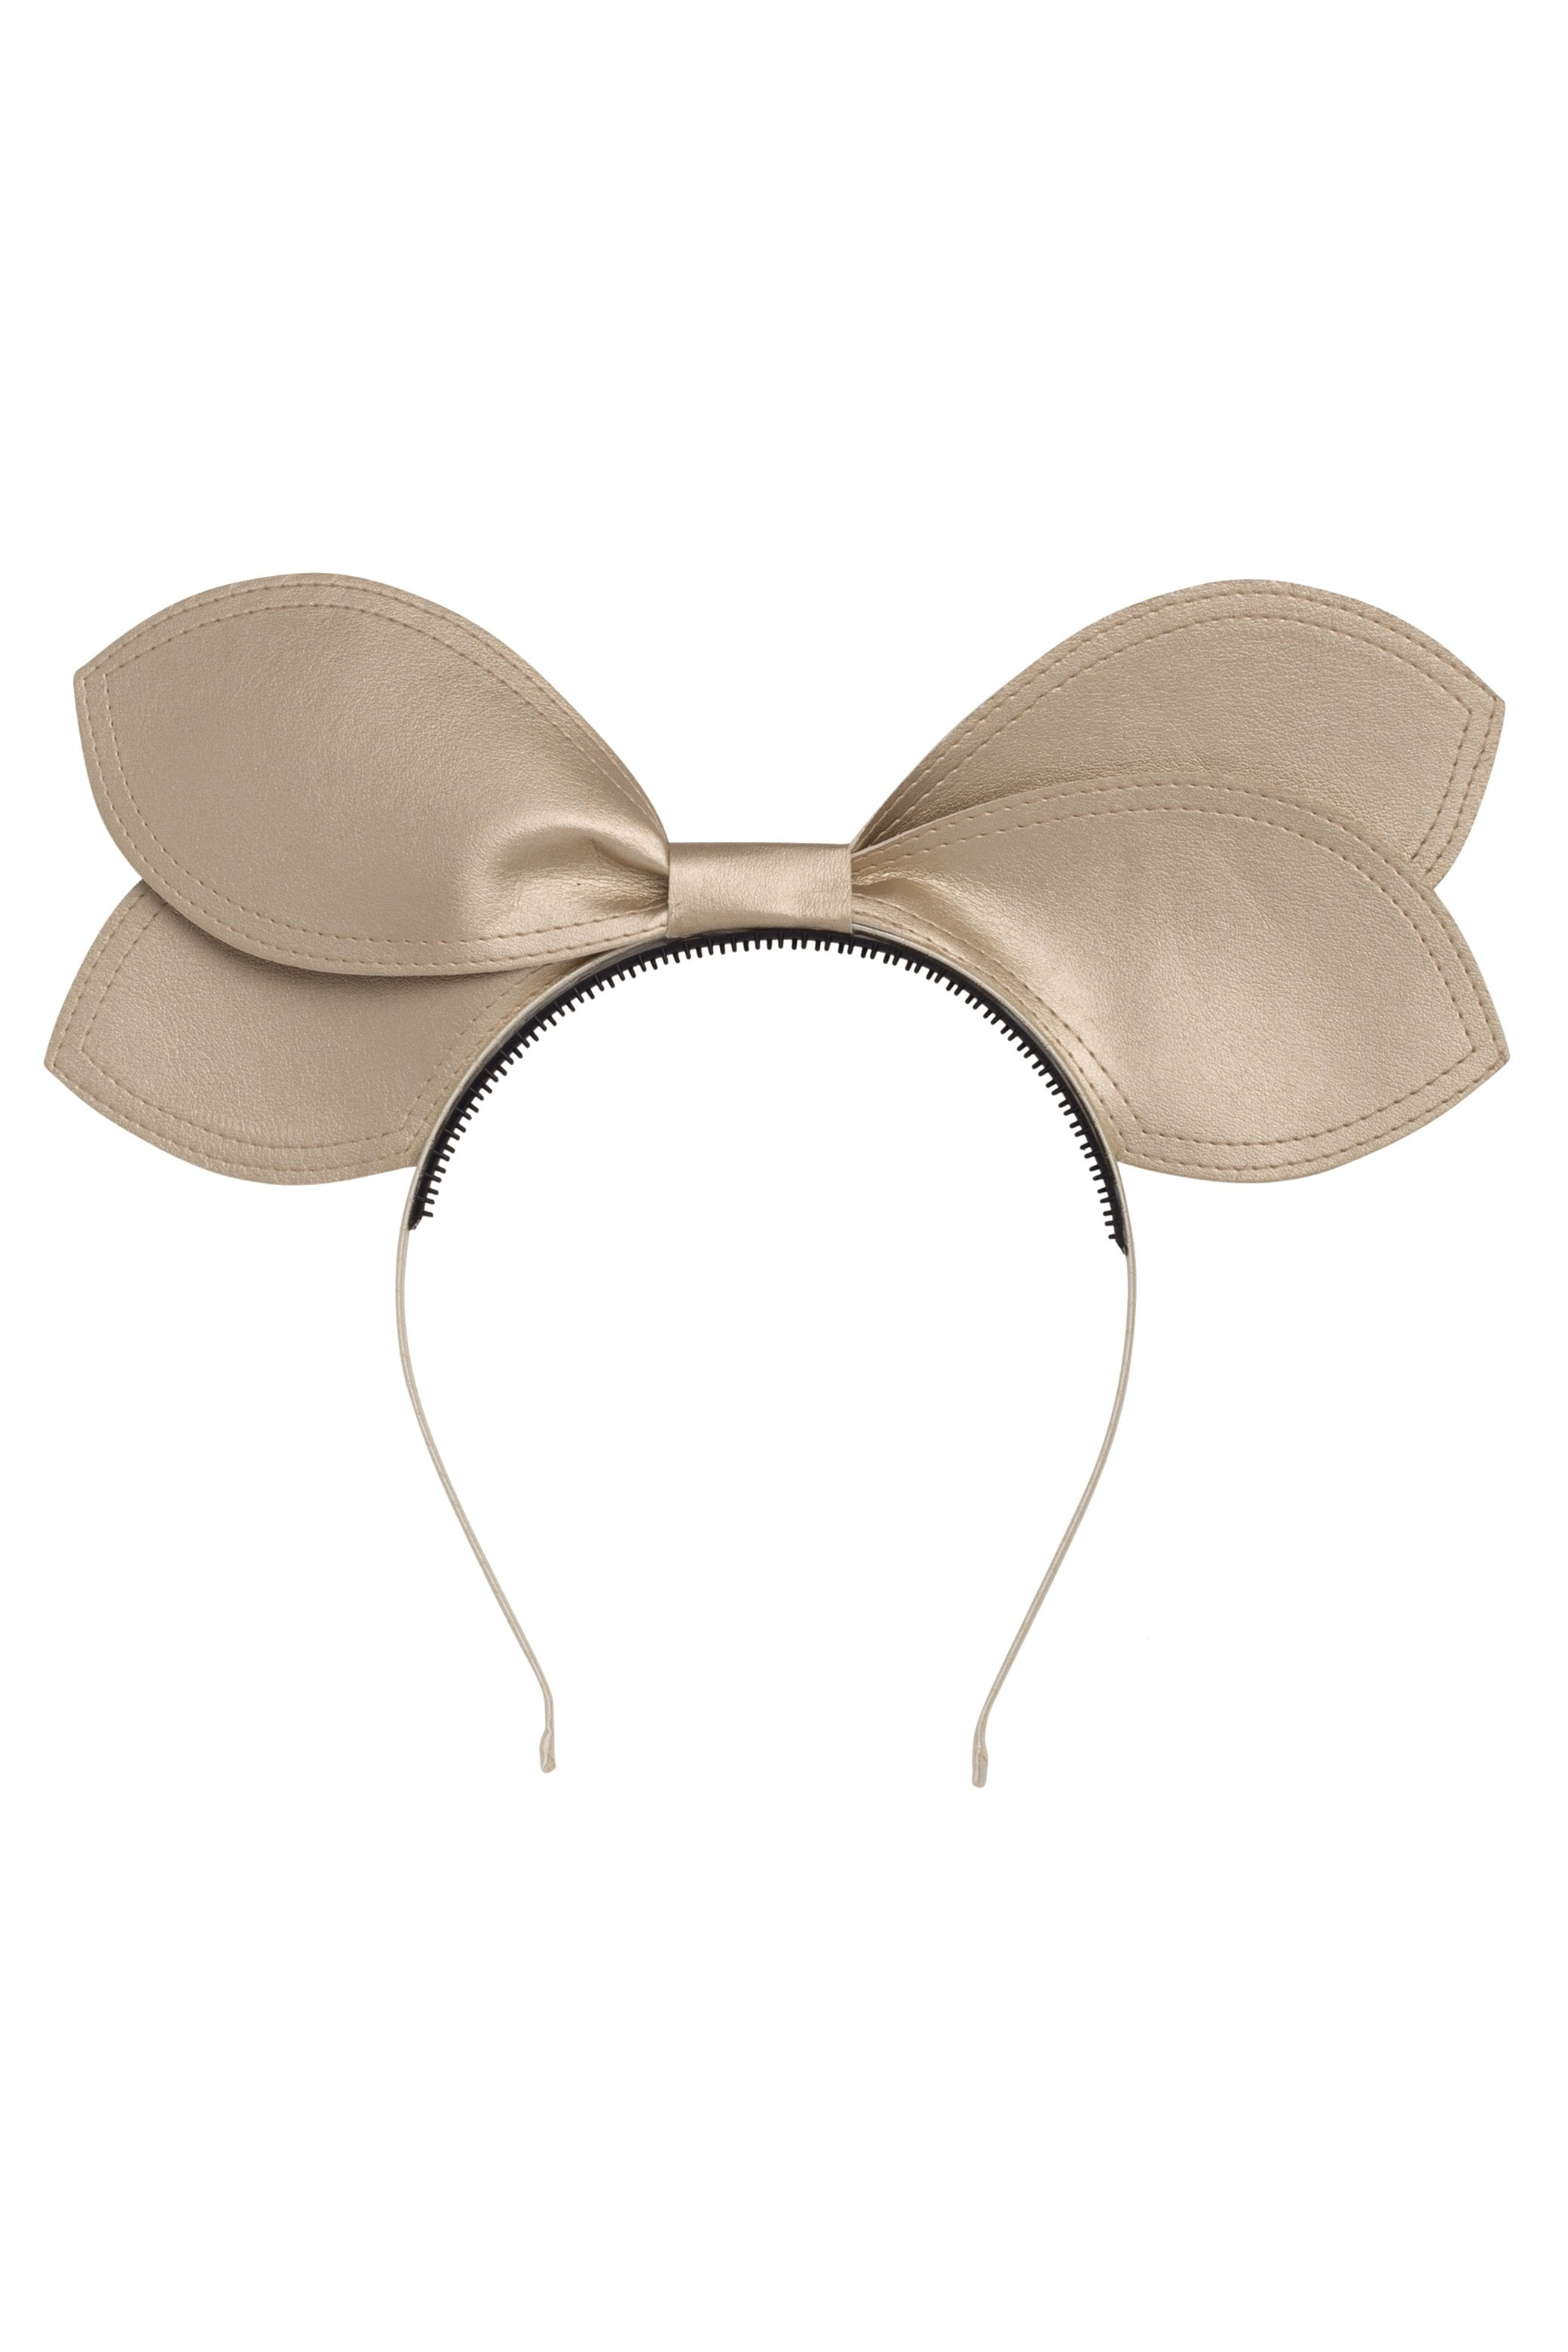 Growing Orchid Headband - Gold Leather